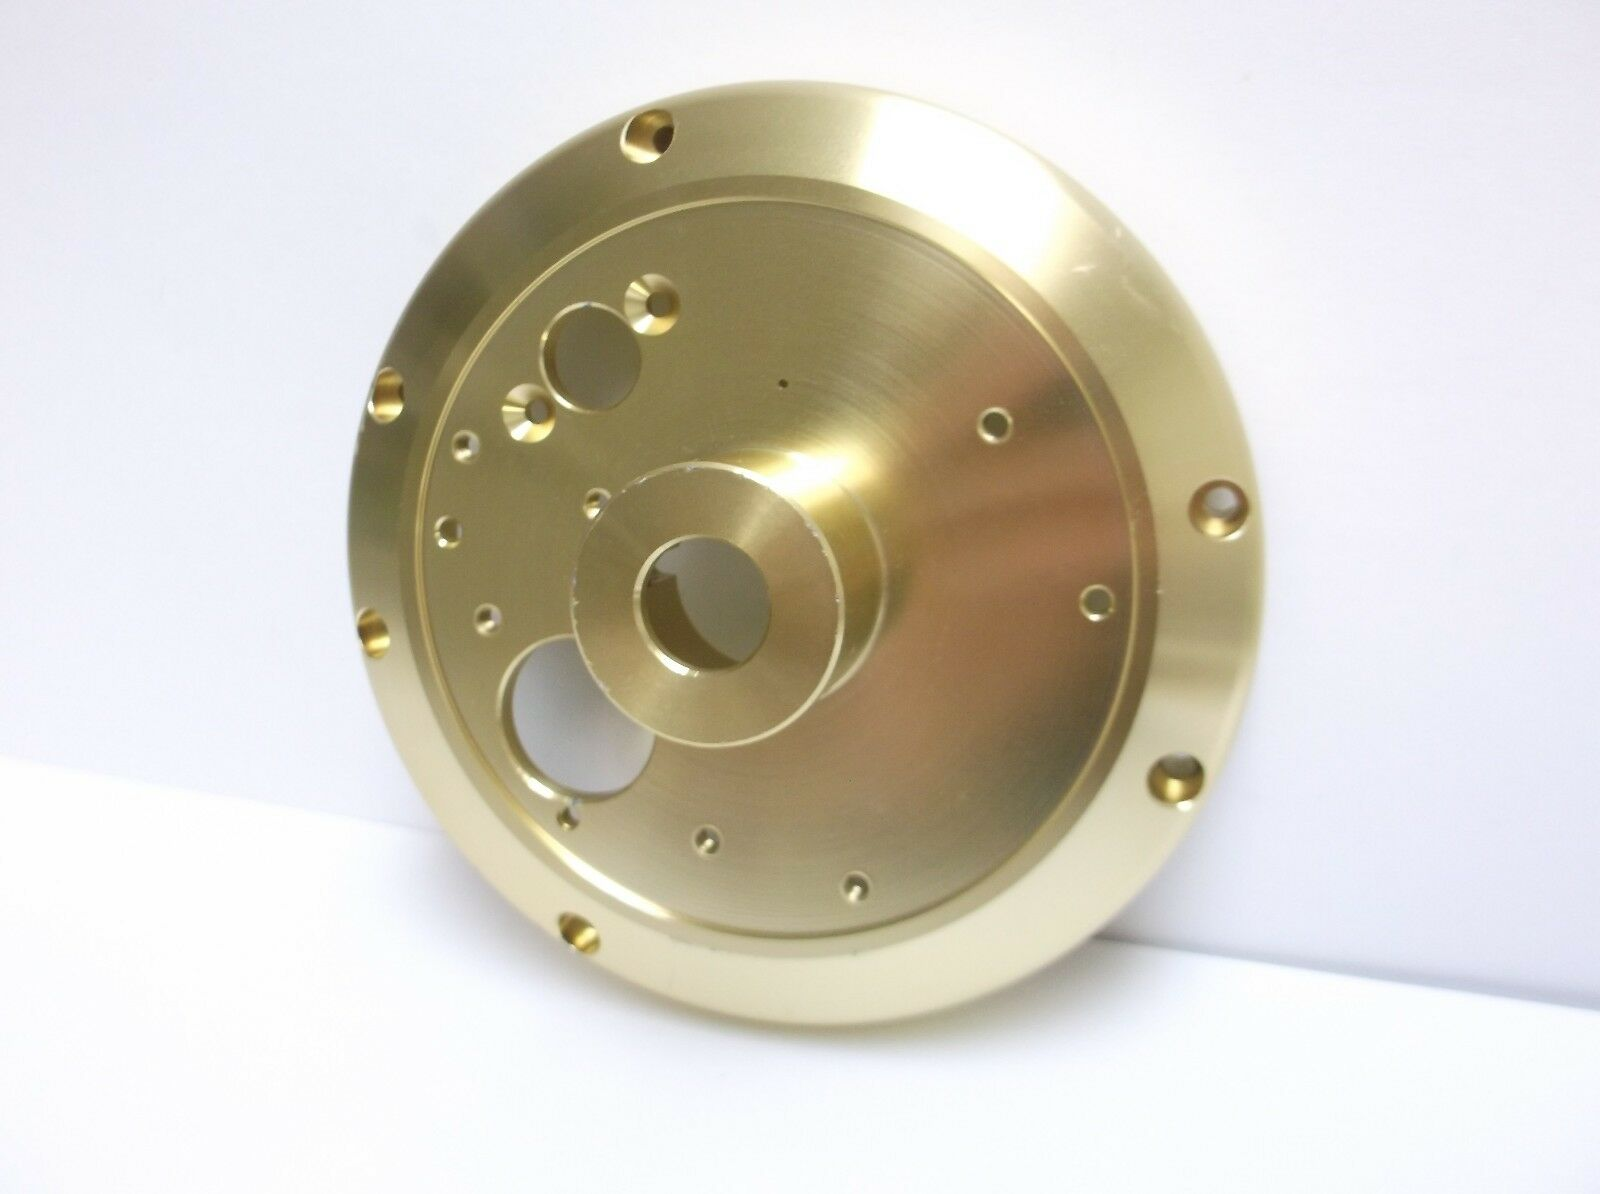 SHIMANO BIG GAME REEL PART TT0265 Tiagra 50 50W 50WLRS - Right Side Plate (A)  C